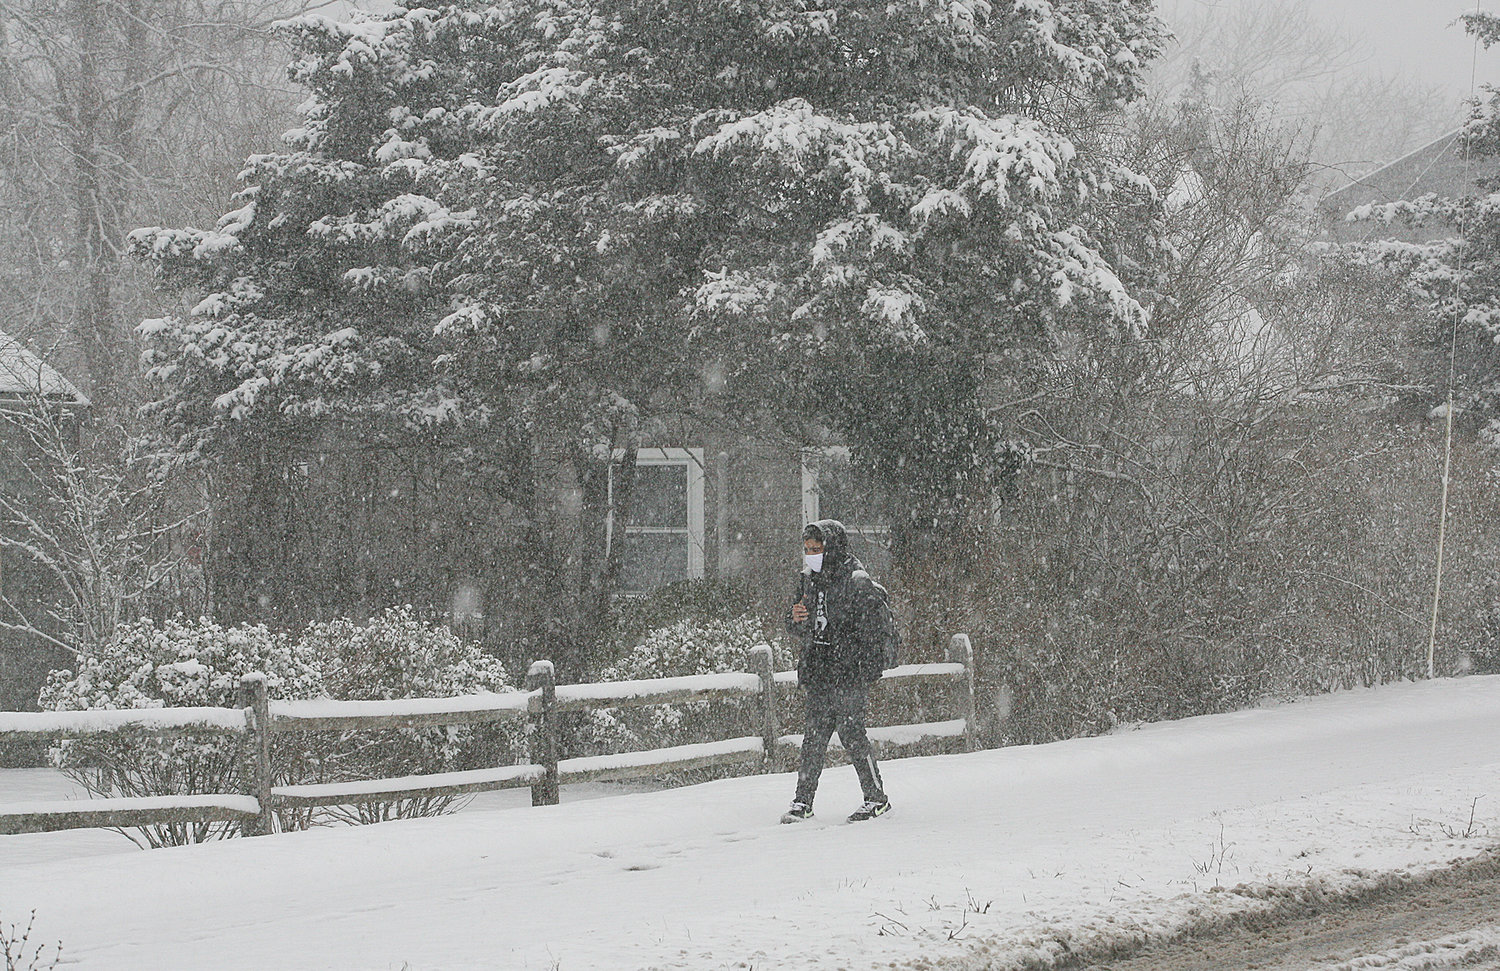 A person, mask on, makes his way through the snow along Surfside Road near the schools.